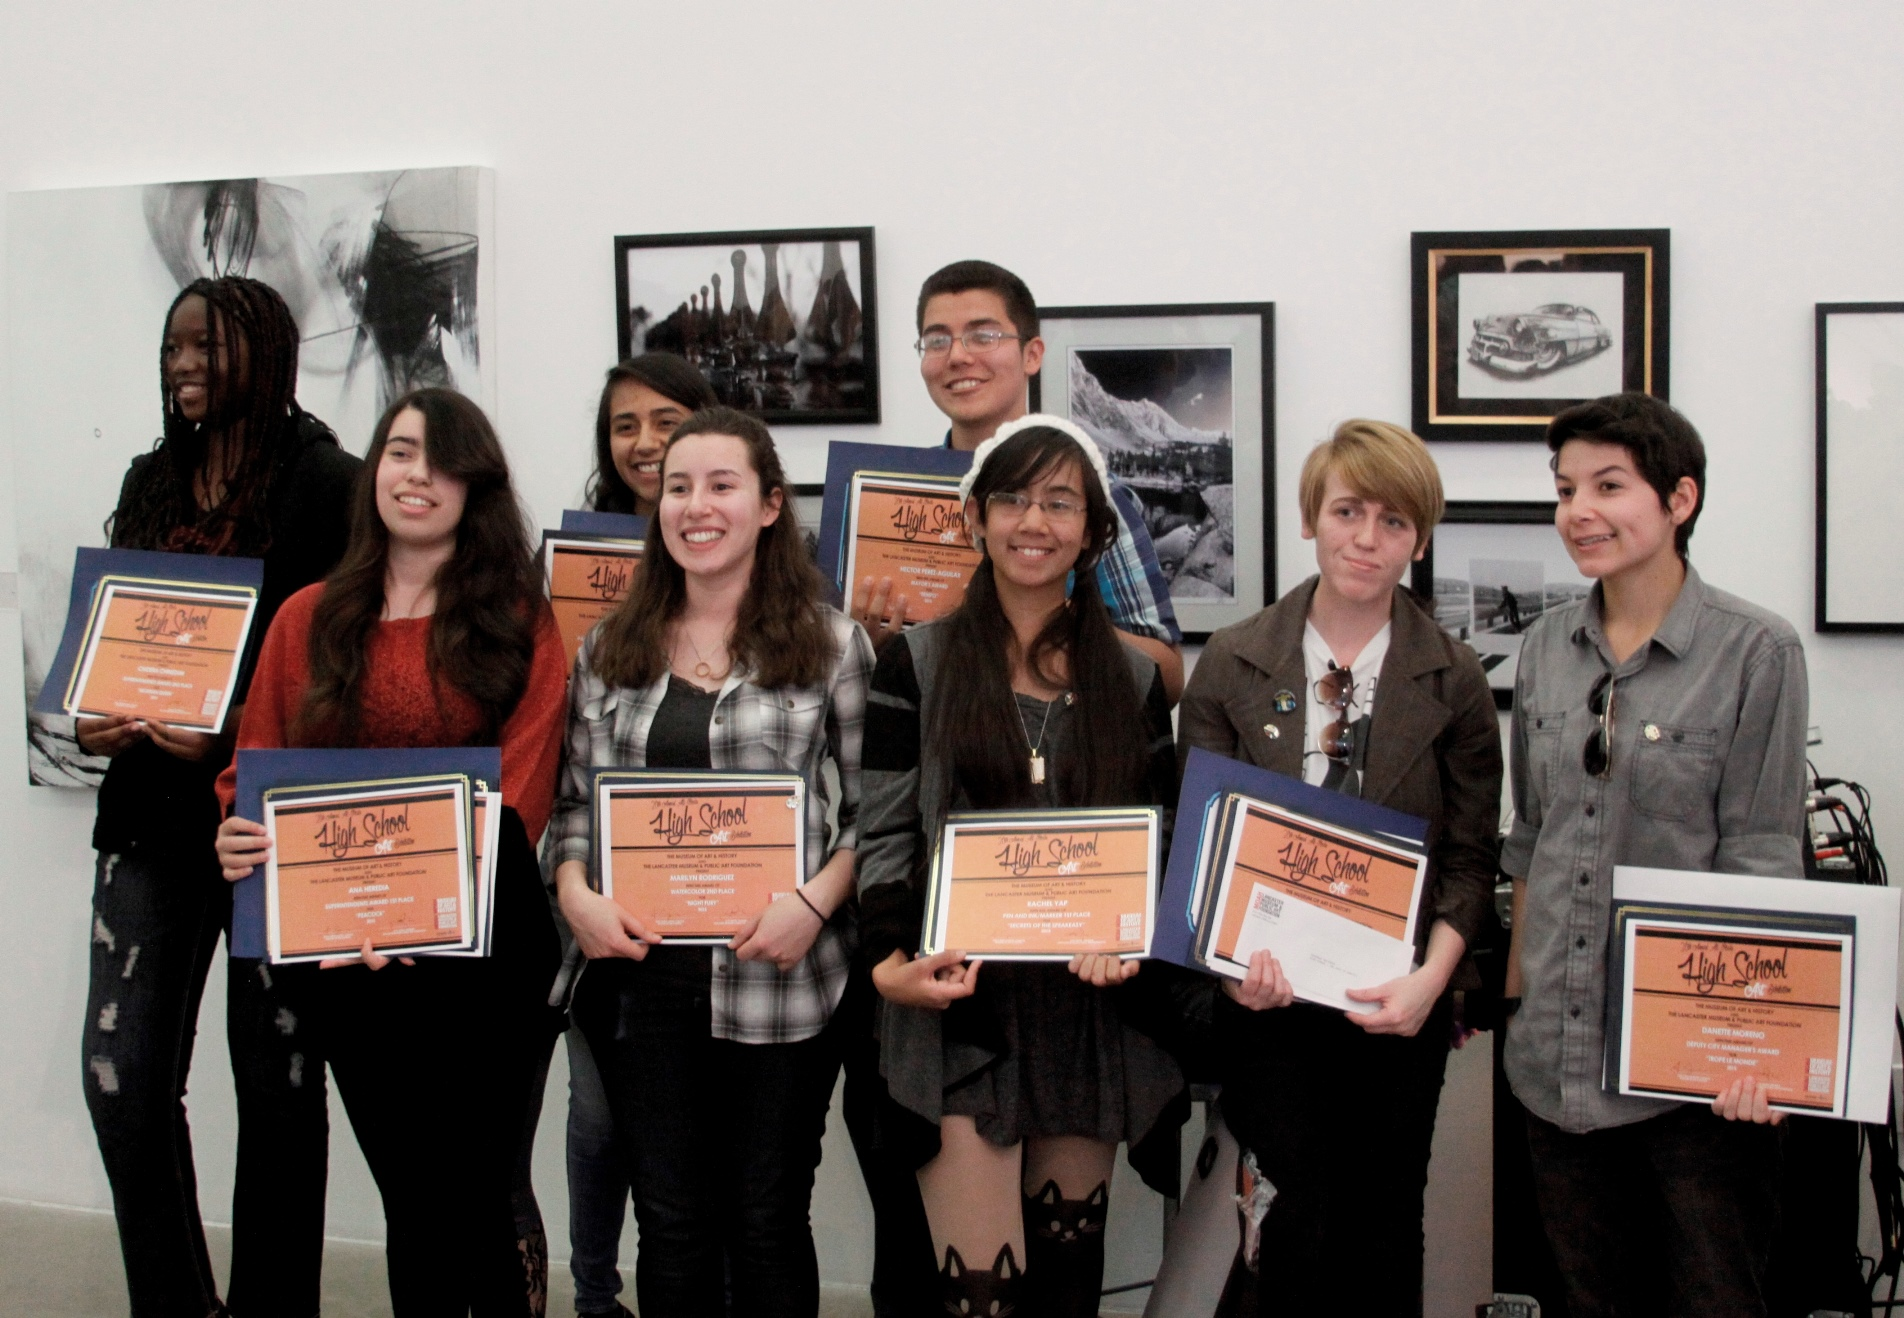 Several young artists pose for a group photo